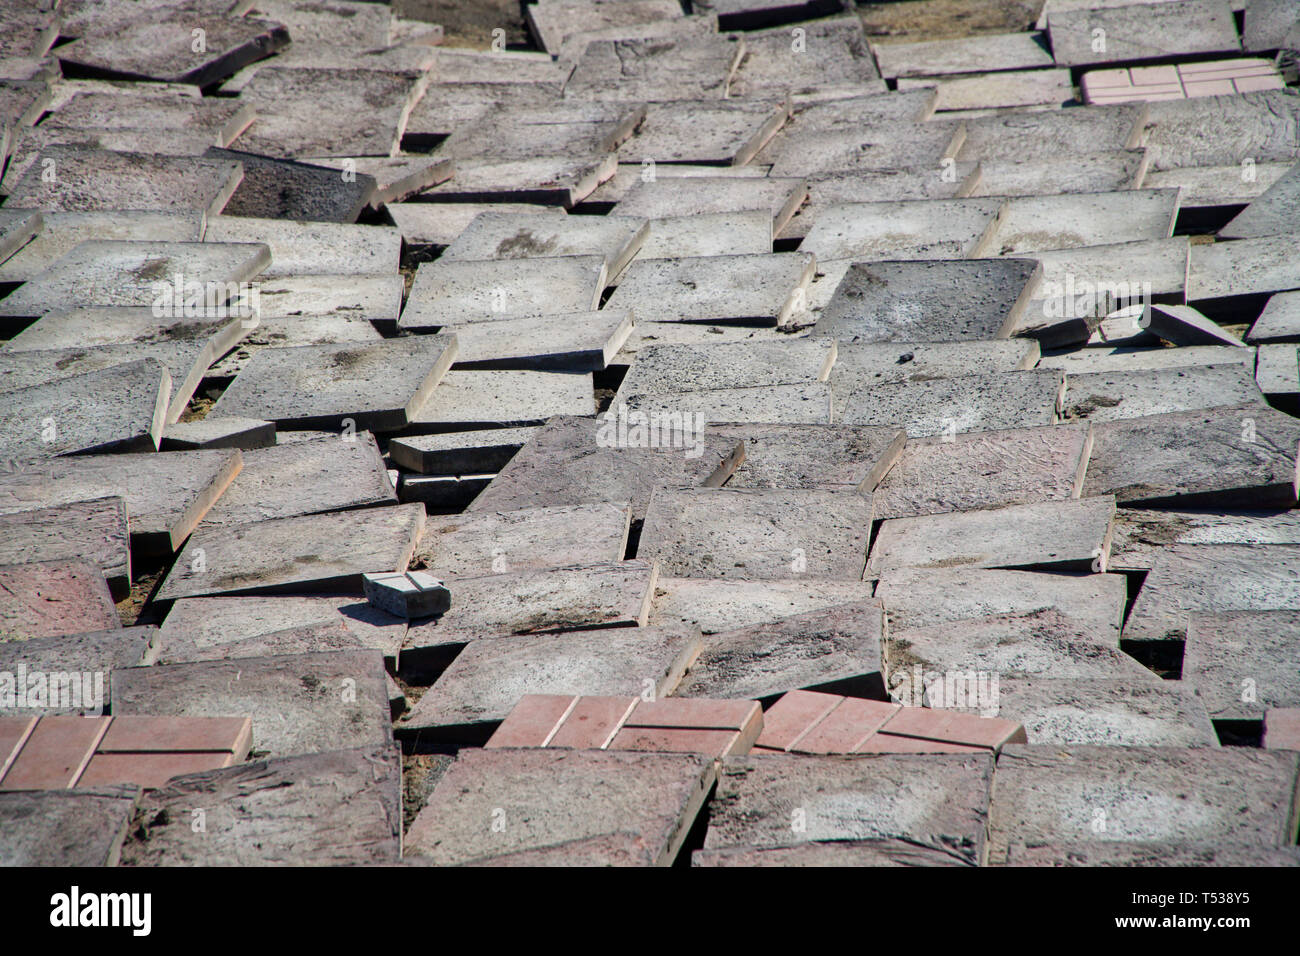 Old worn pavement tiles in the process of dismantling and replacement. Urban economy. - Stock Image